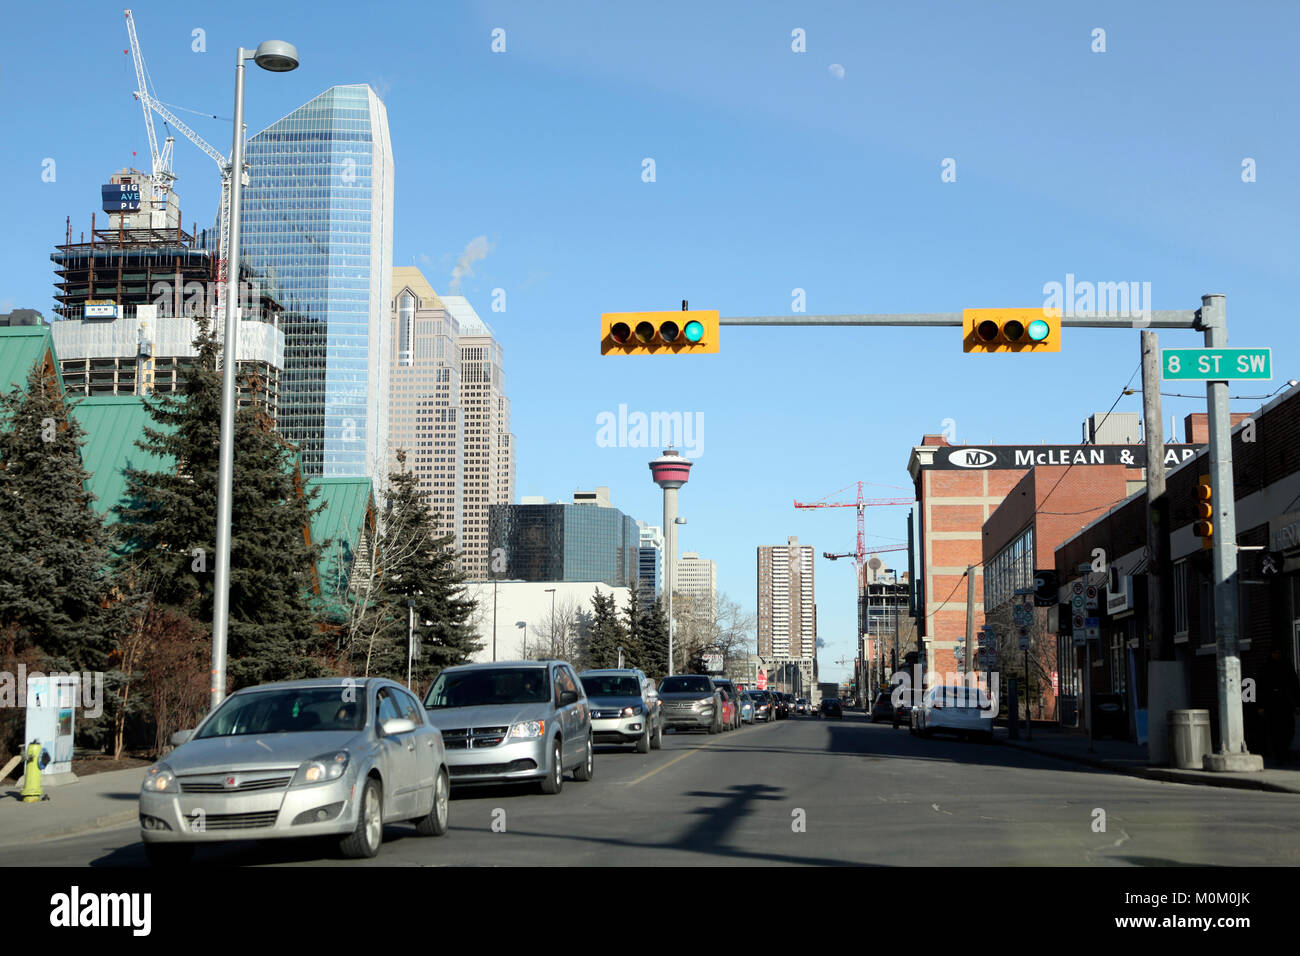 Cars rush on the green light on a sunny March day on a street crossing in Calgary, Alberta. Growing city enjoys Stock Photo